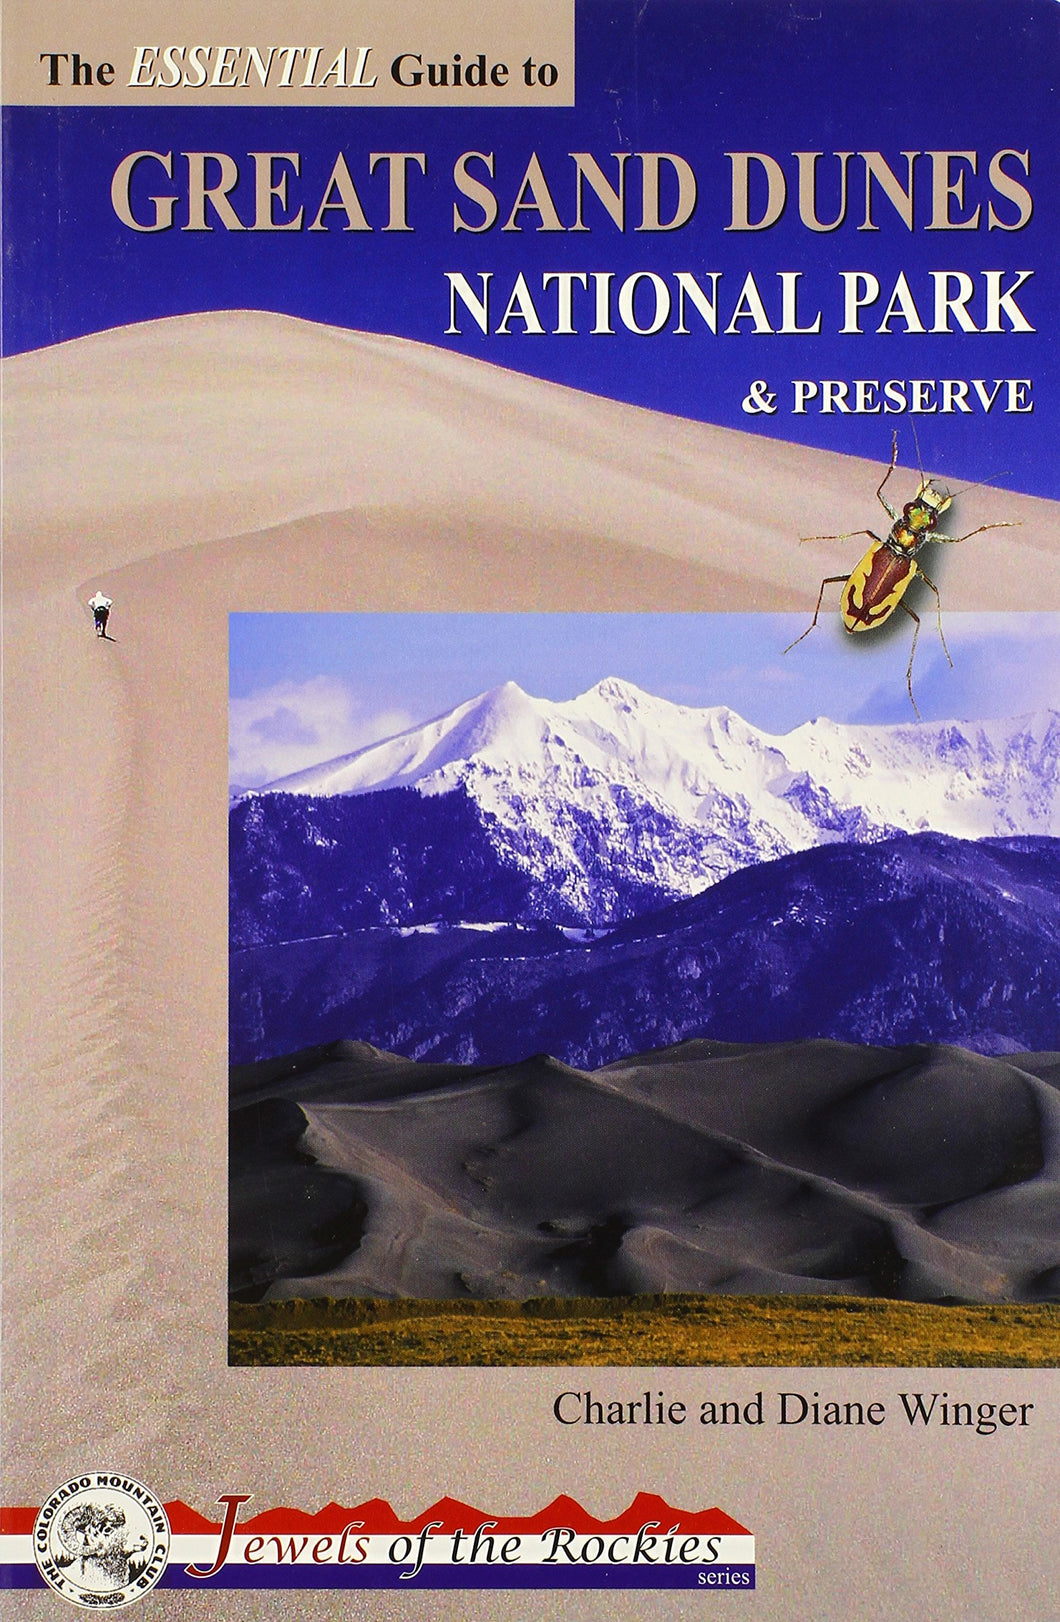 The Essential Guide to the Great Sand Dunes National Park and Preserve